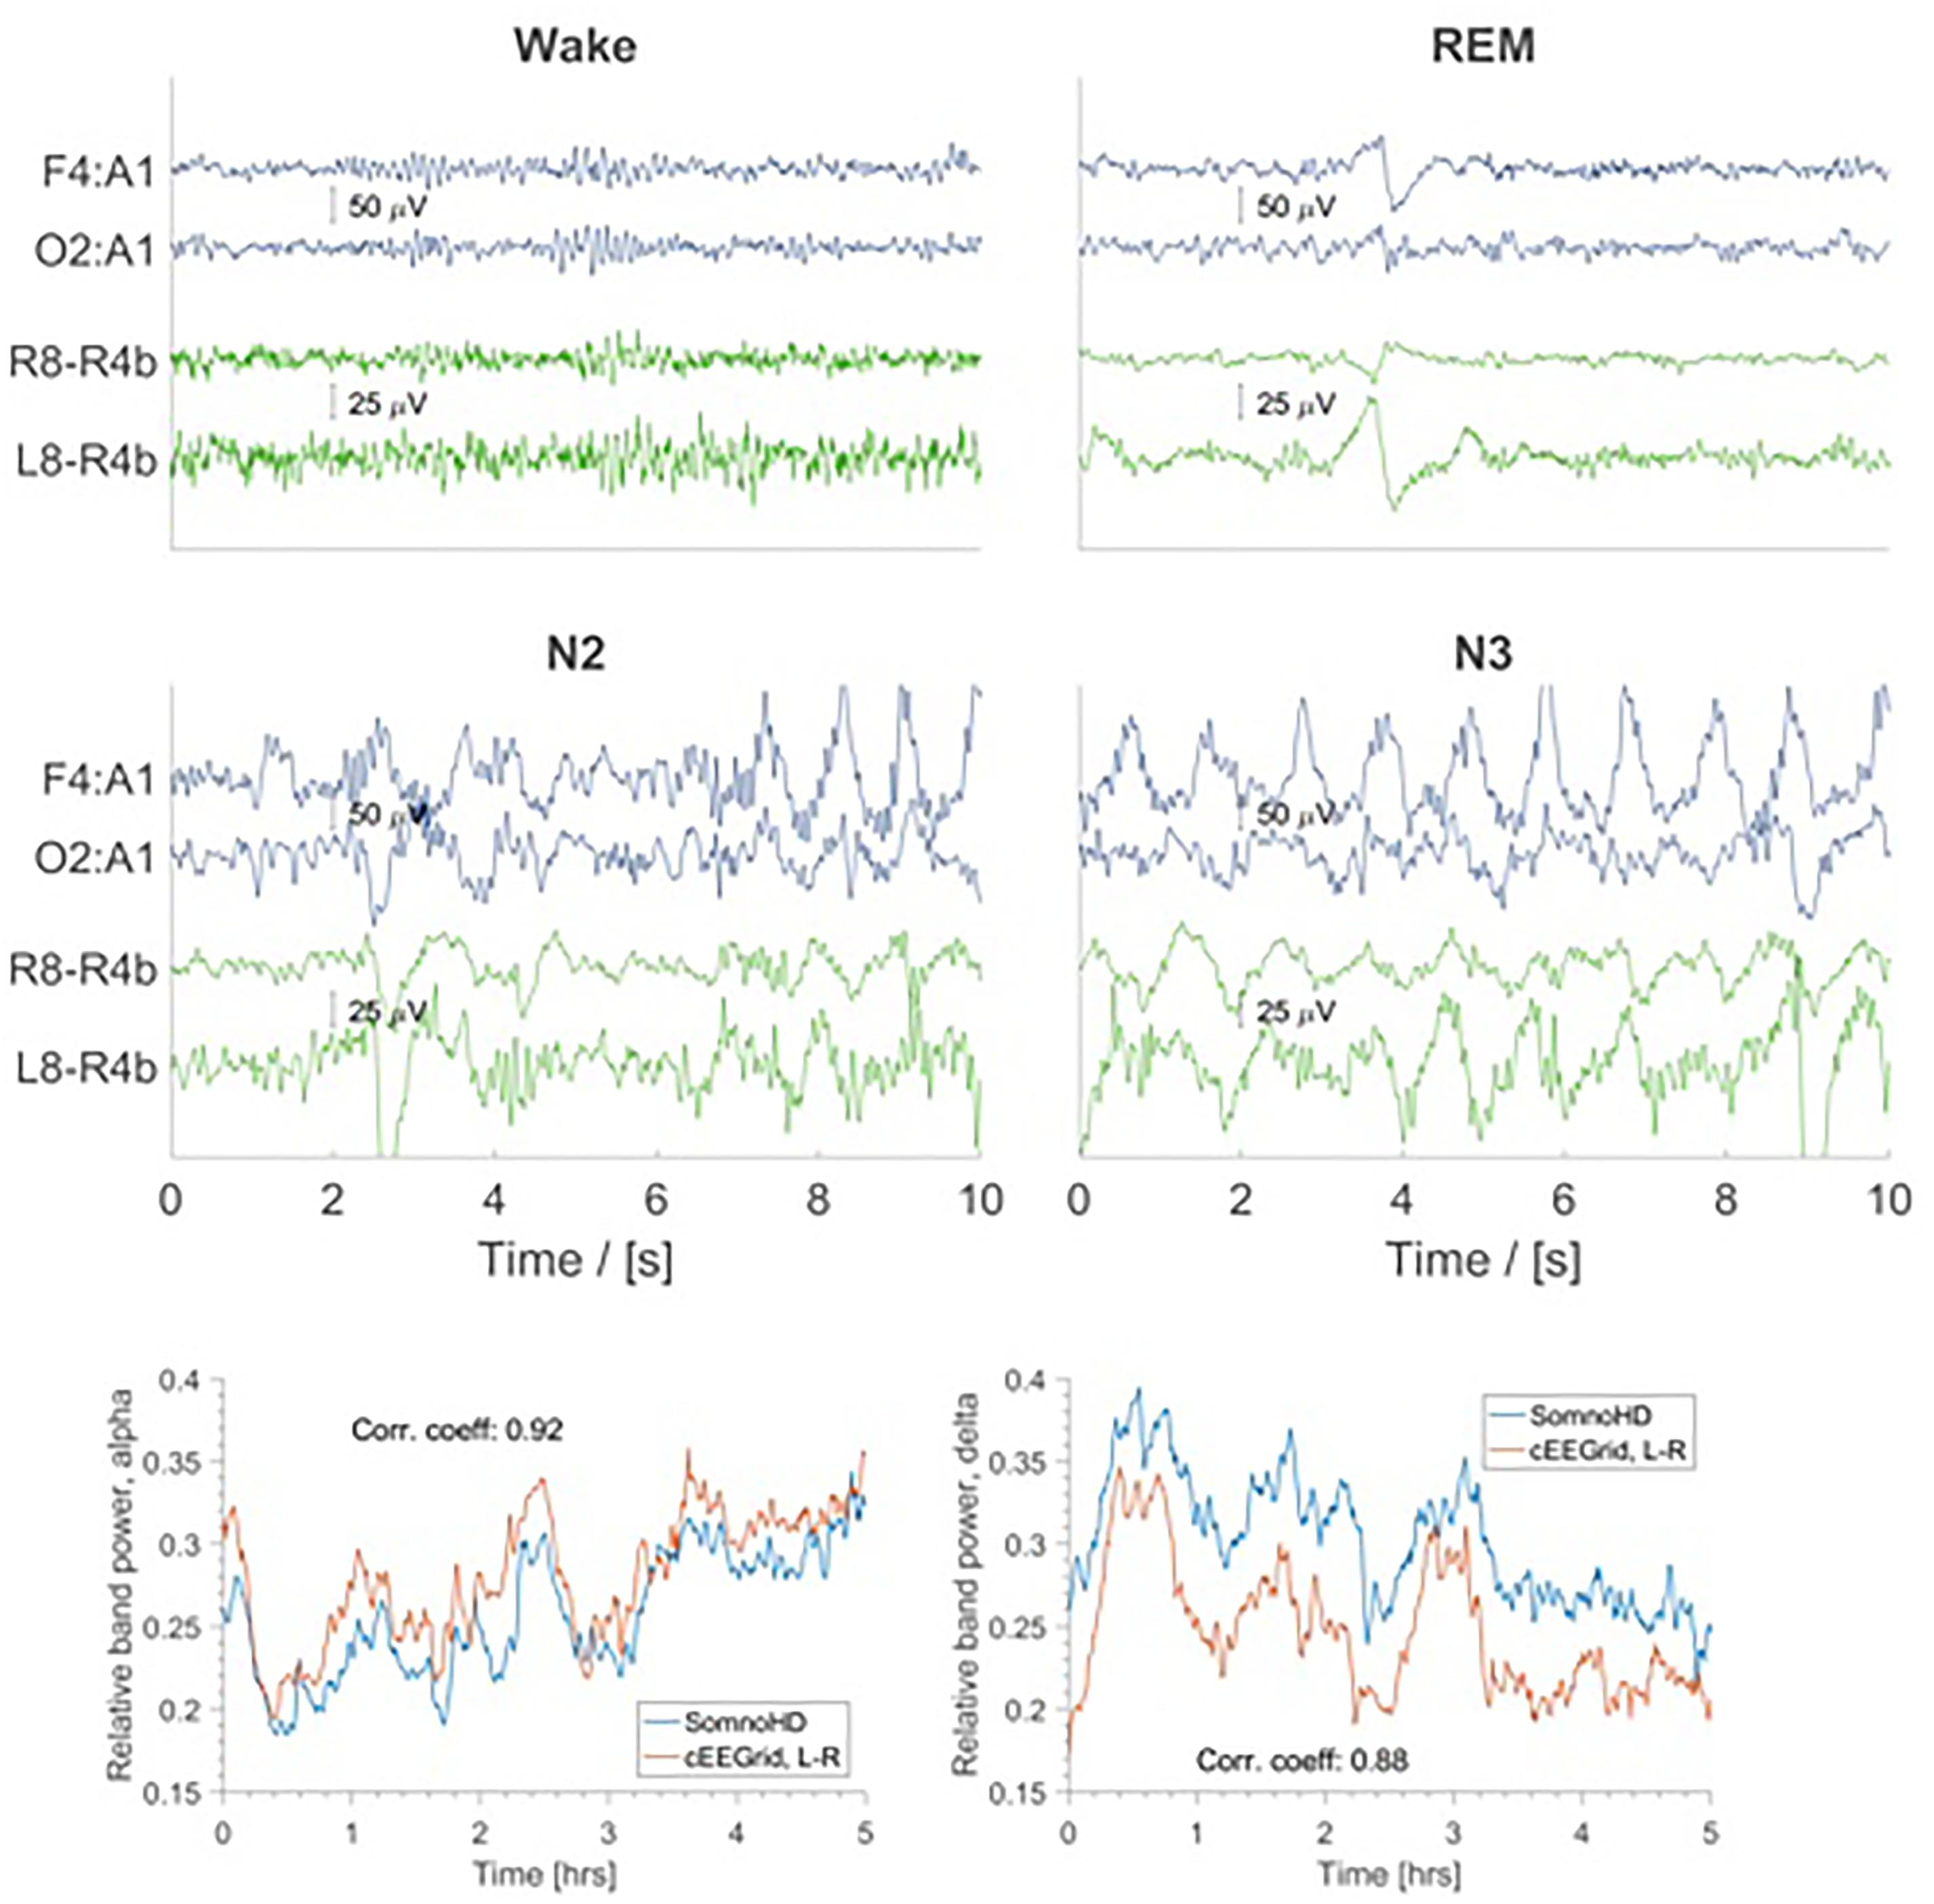 Frontiers | Sleep EEG Derived From Behind-the-Ear Electrodes